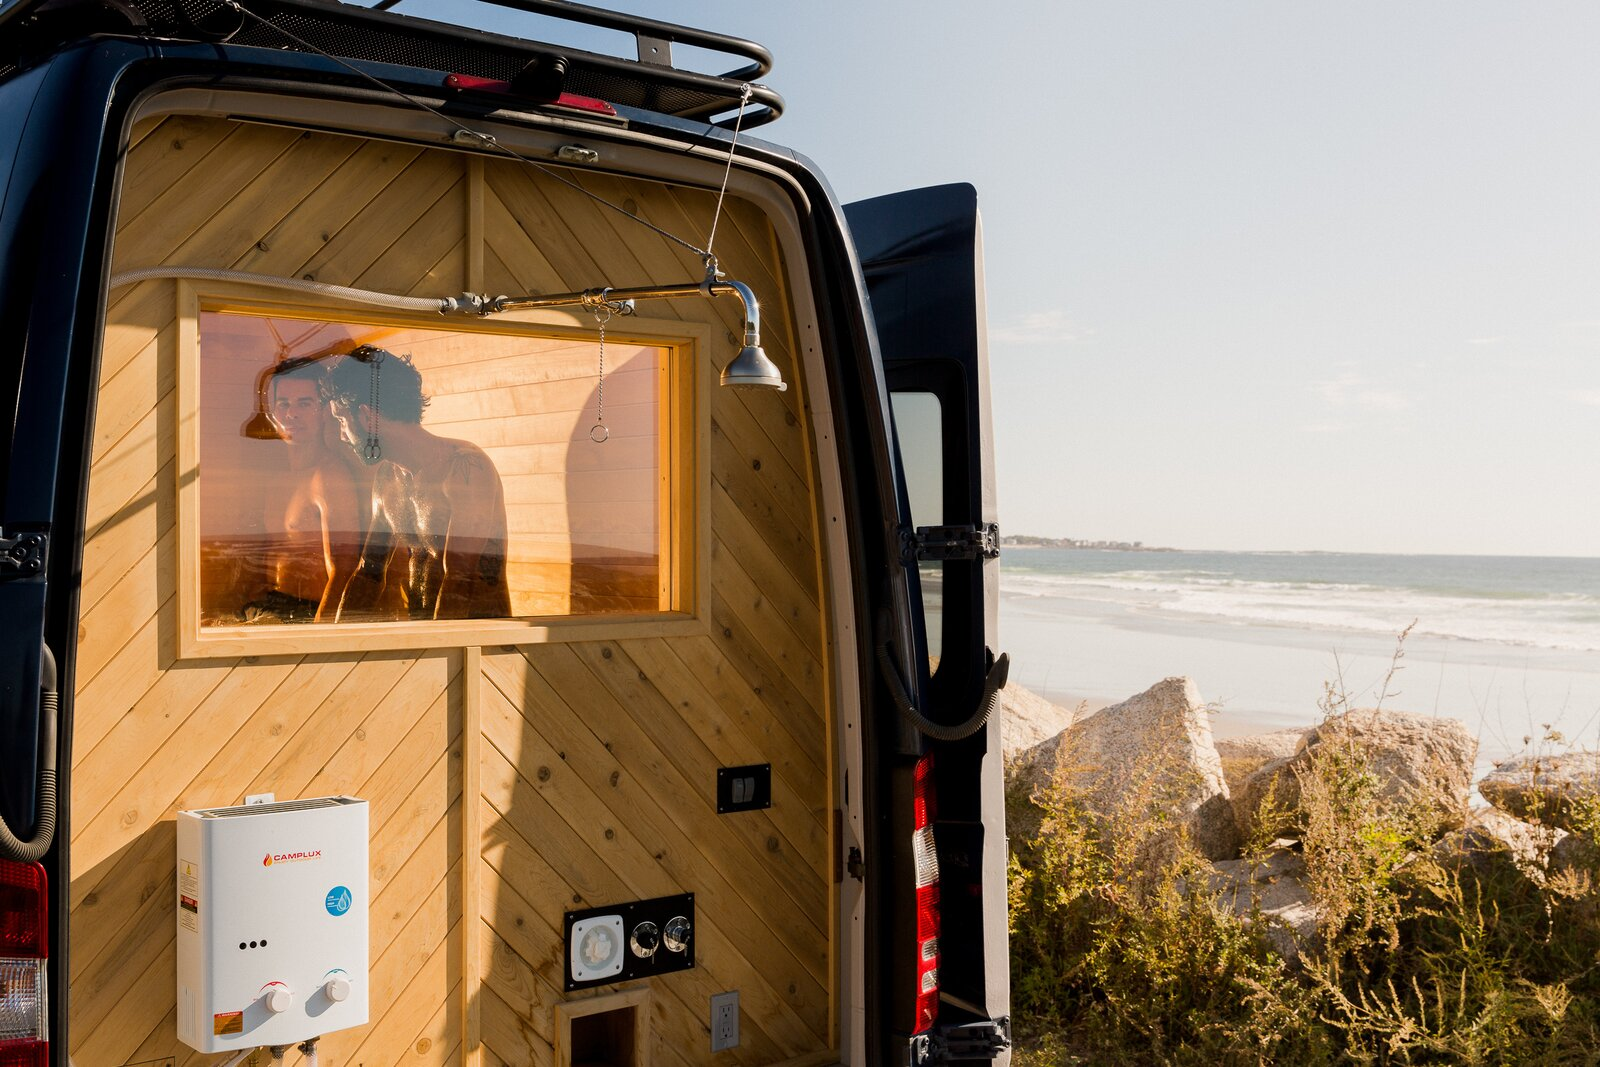 Photo 1 of 11 in Missing the Spa? This Converted Mercedes Sprinter Can Bring the Sauna to Your Doorstep